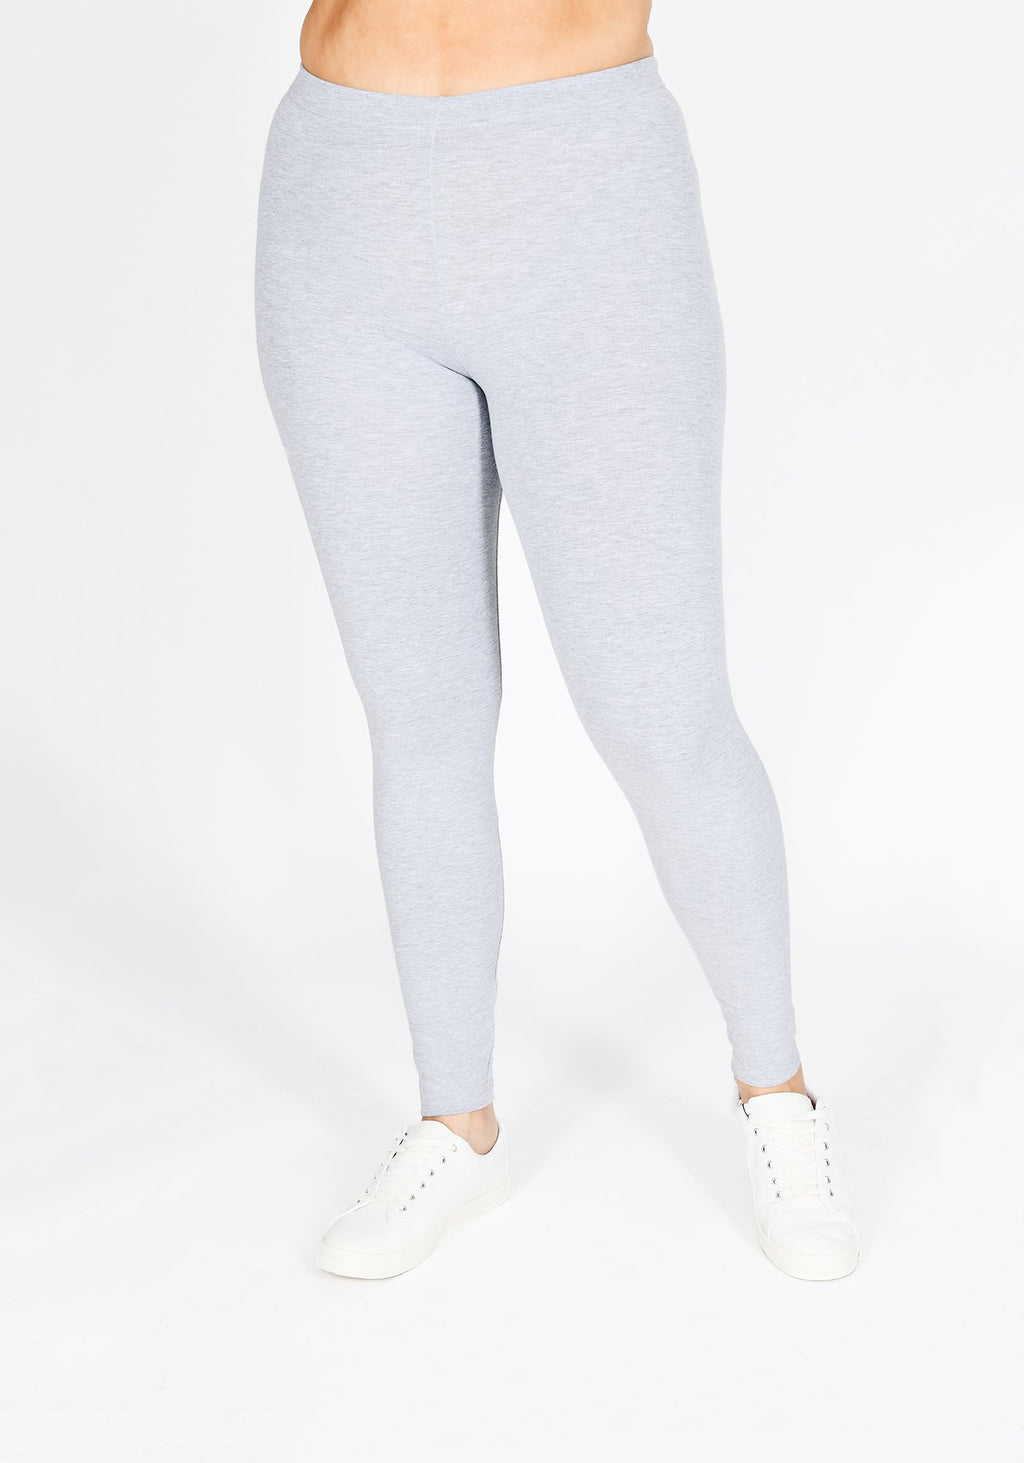 Classic Plus Size Light Grey Marl Leggings 1